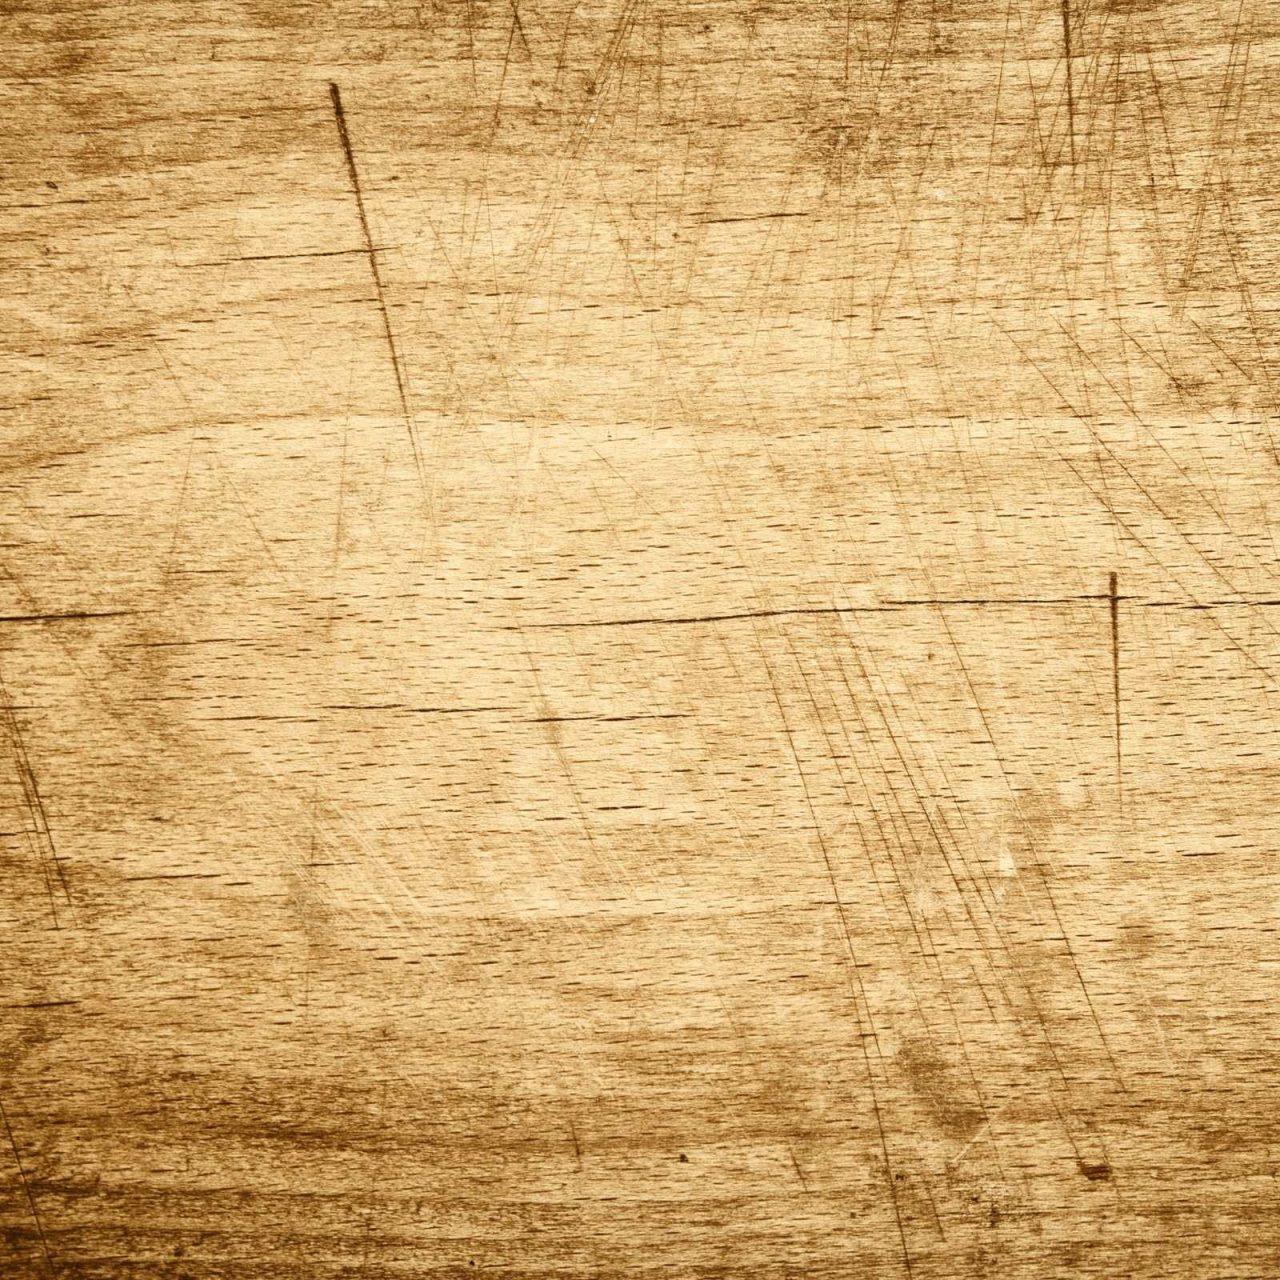 Download Cute Wallpaper For Mobile Phone Light Rustic Wood Background Images Hd Wallpapers Hd